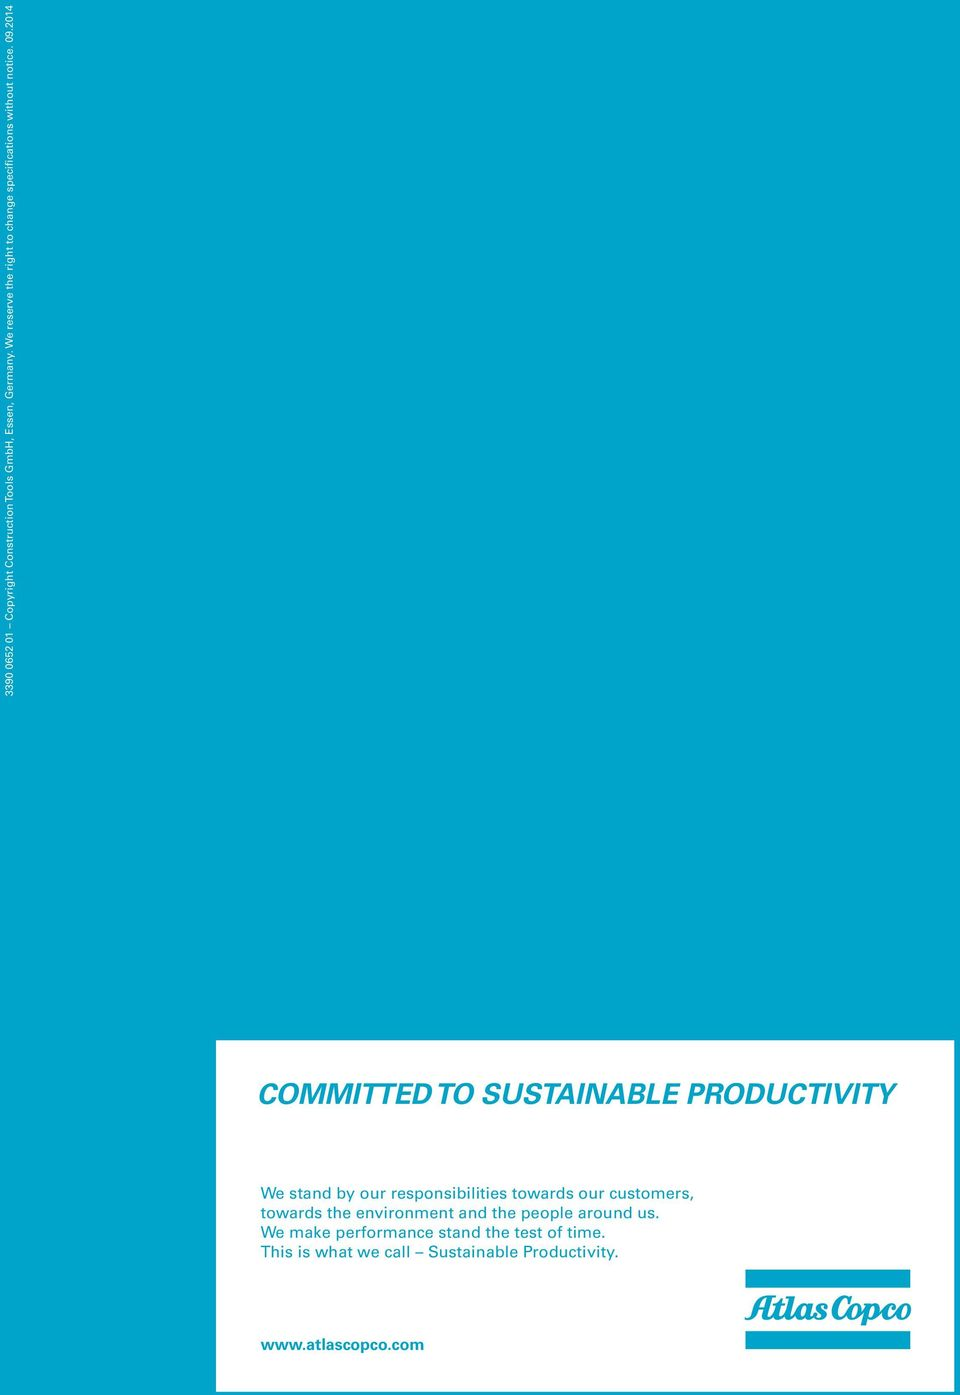 2014 Committed to sustainable productivity We stand by our responsibilities towards our